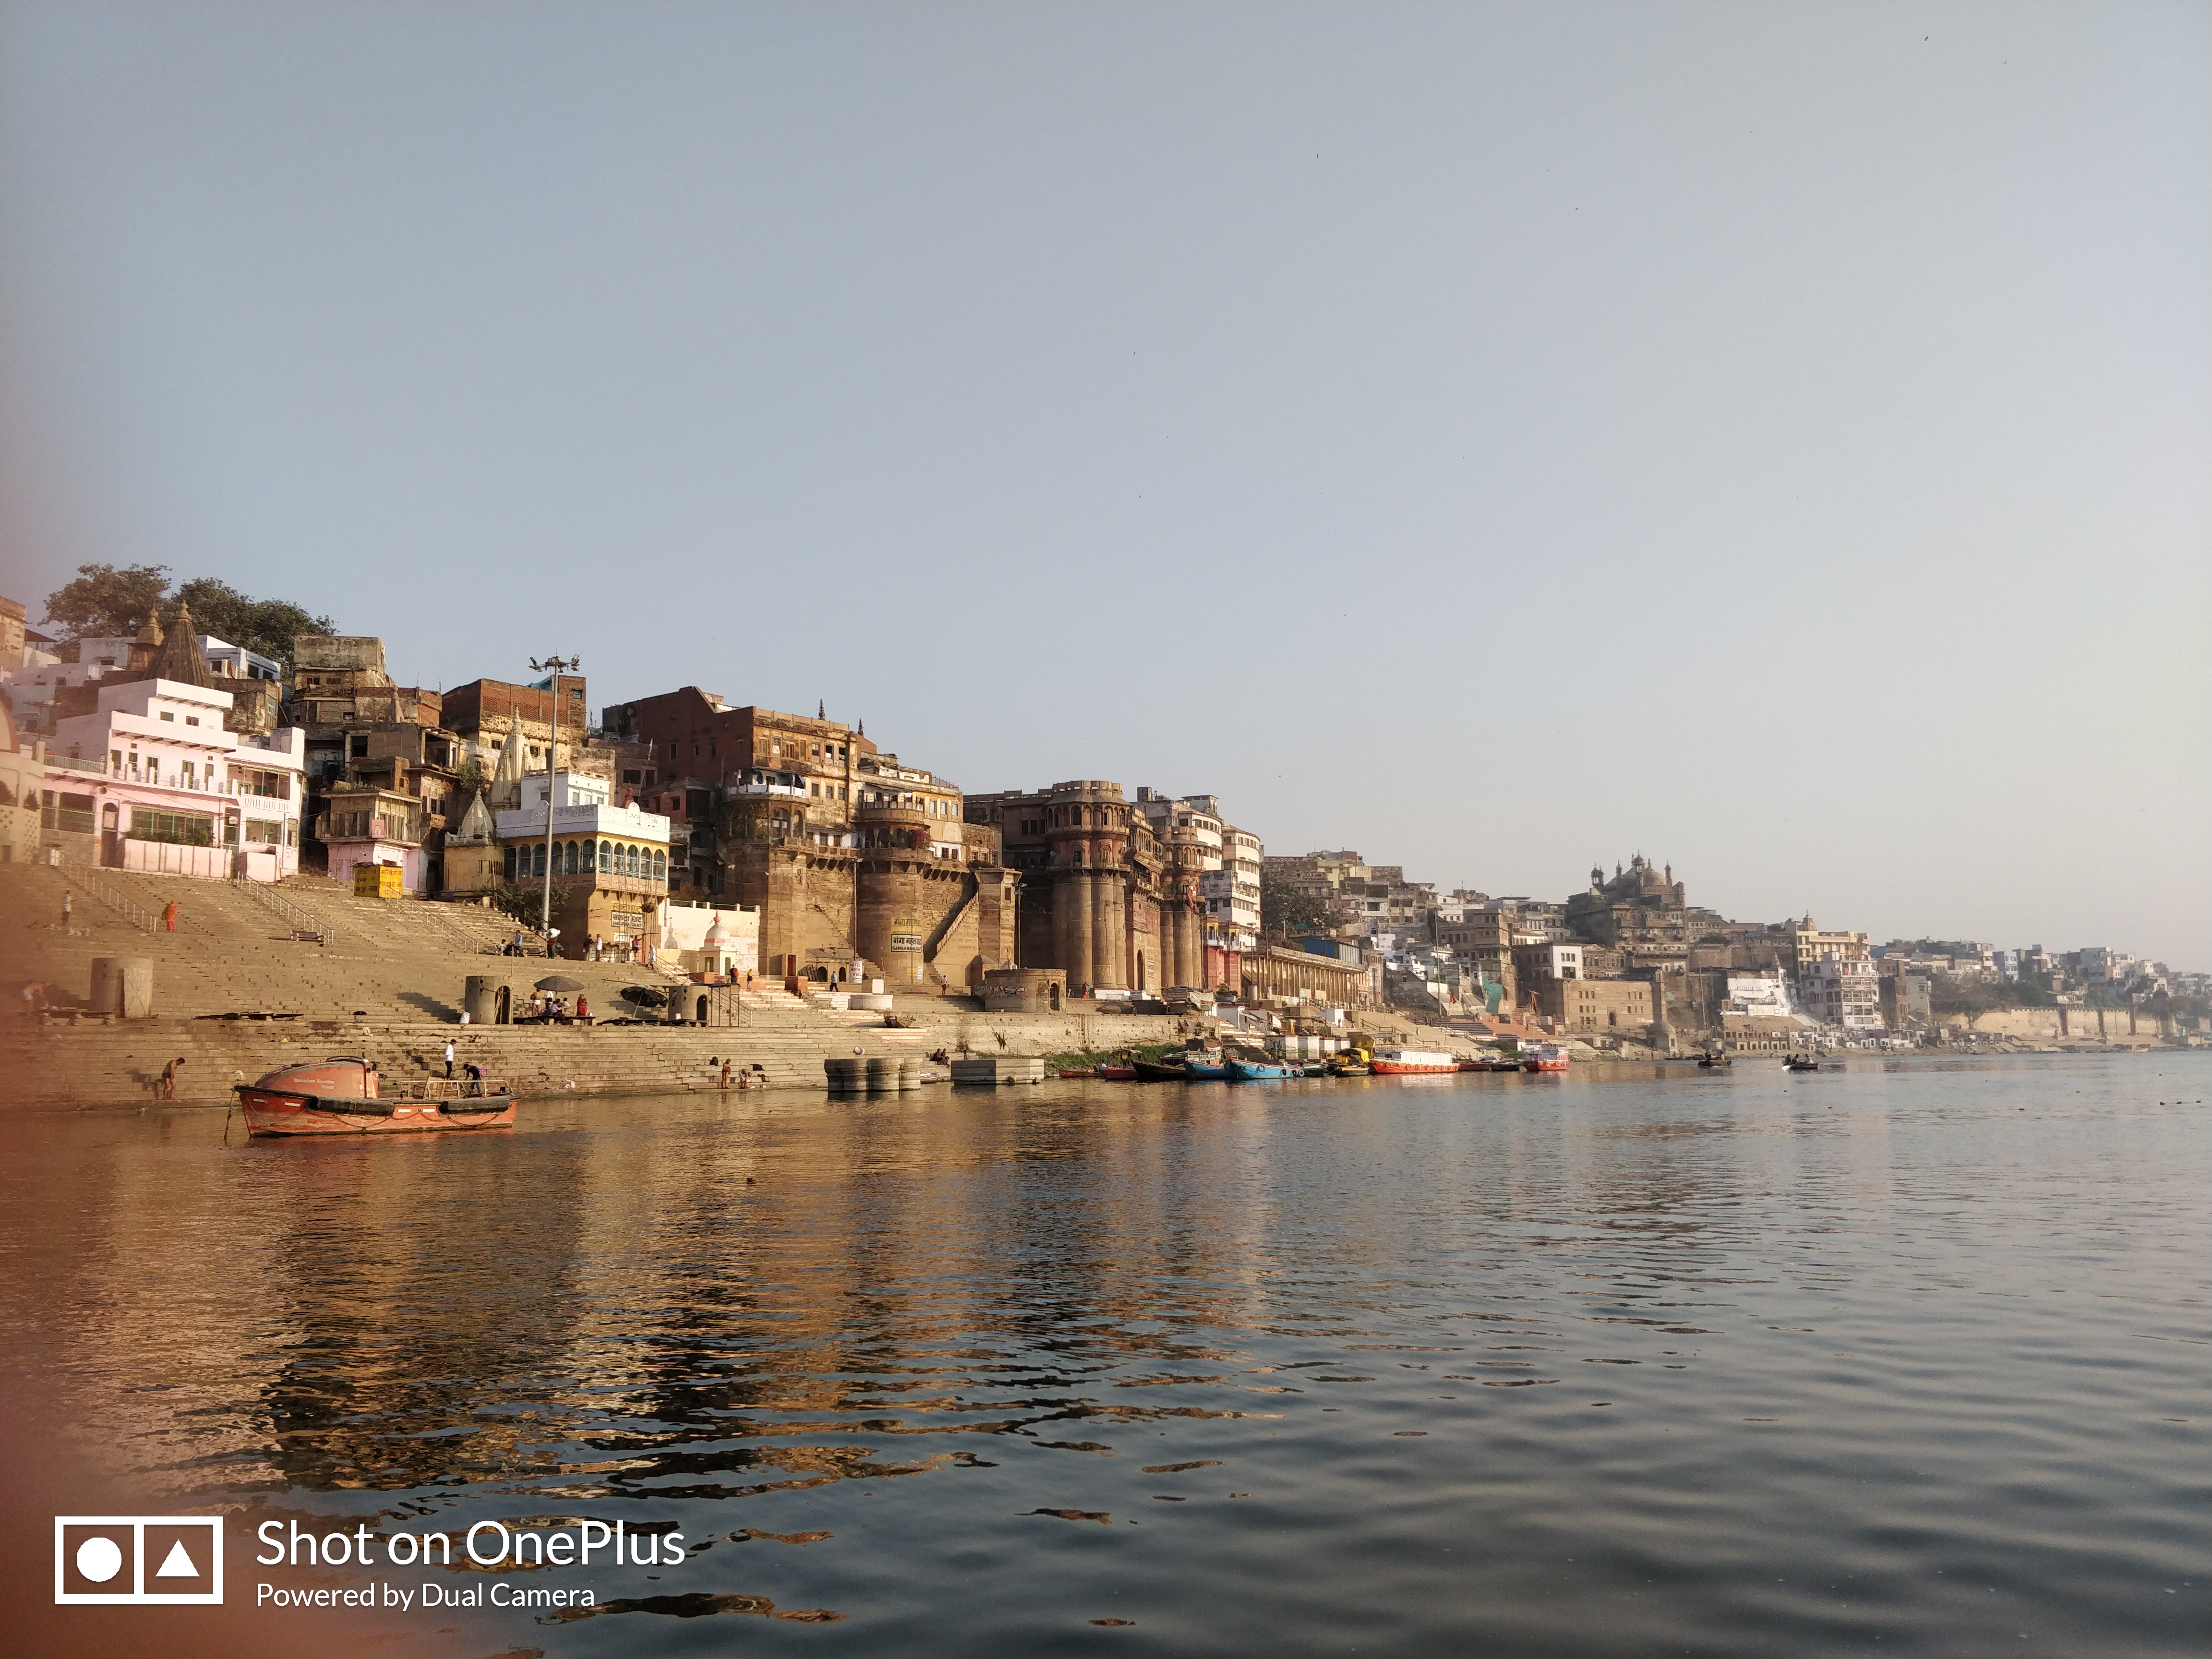 View of ghats from the river